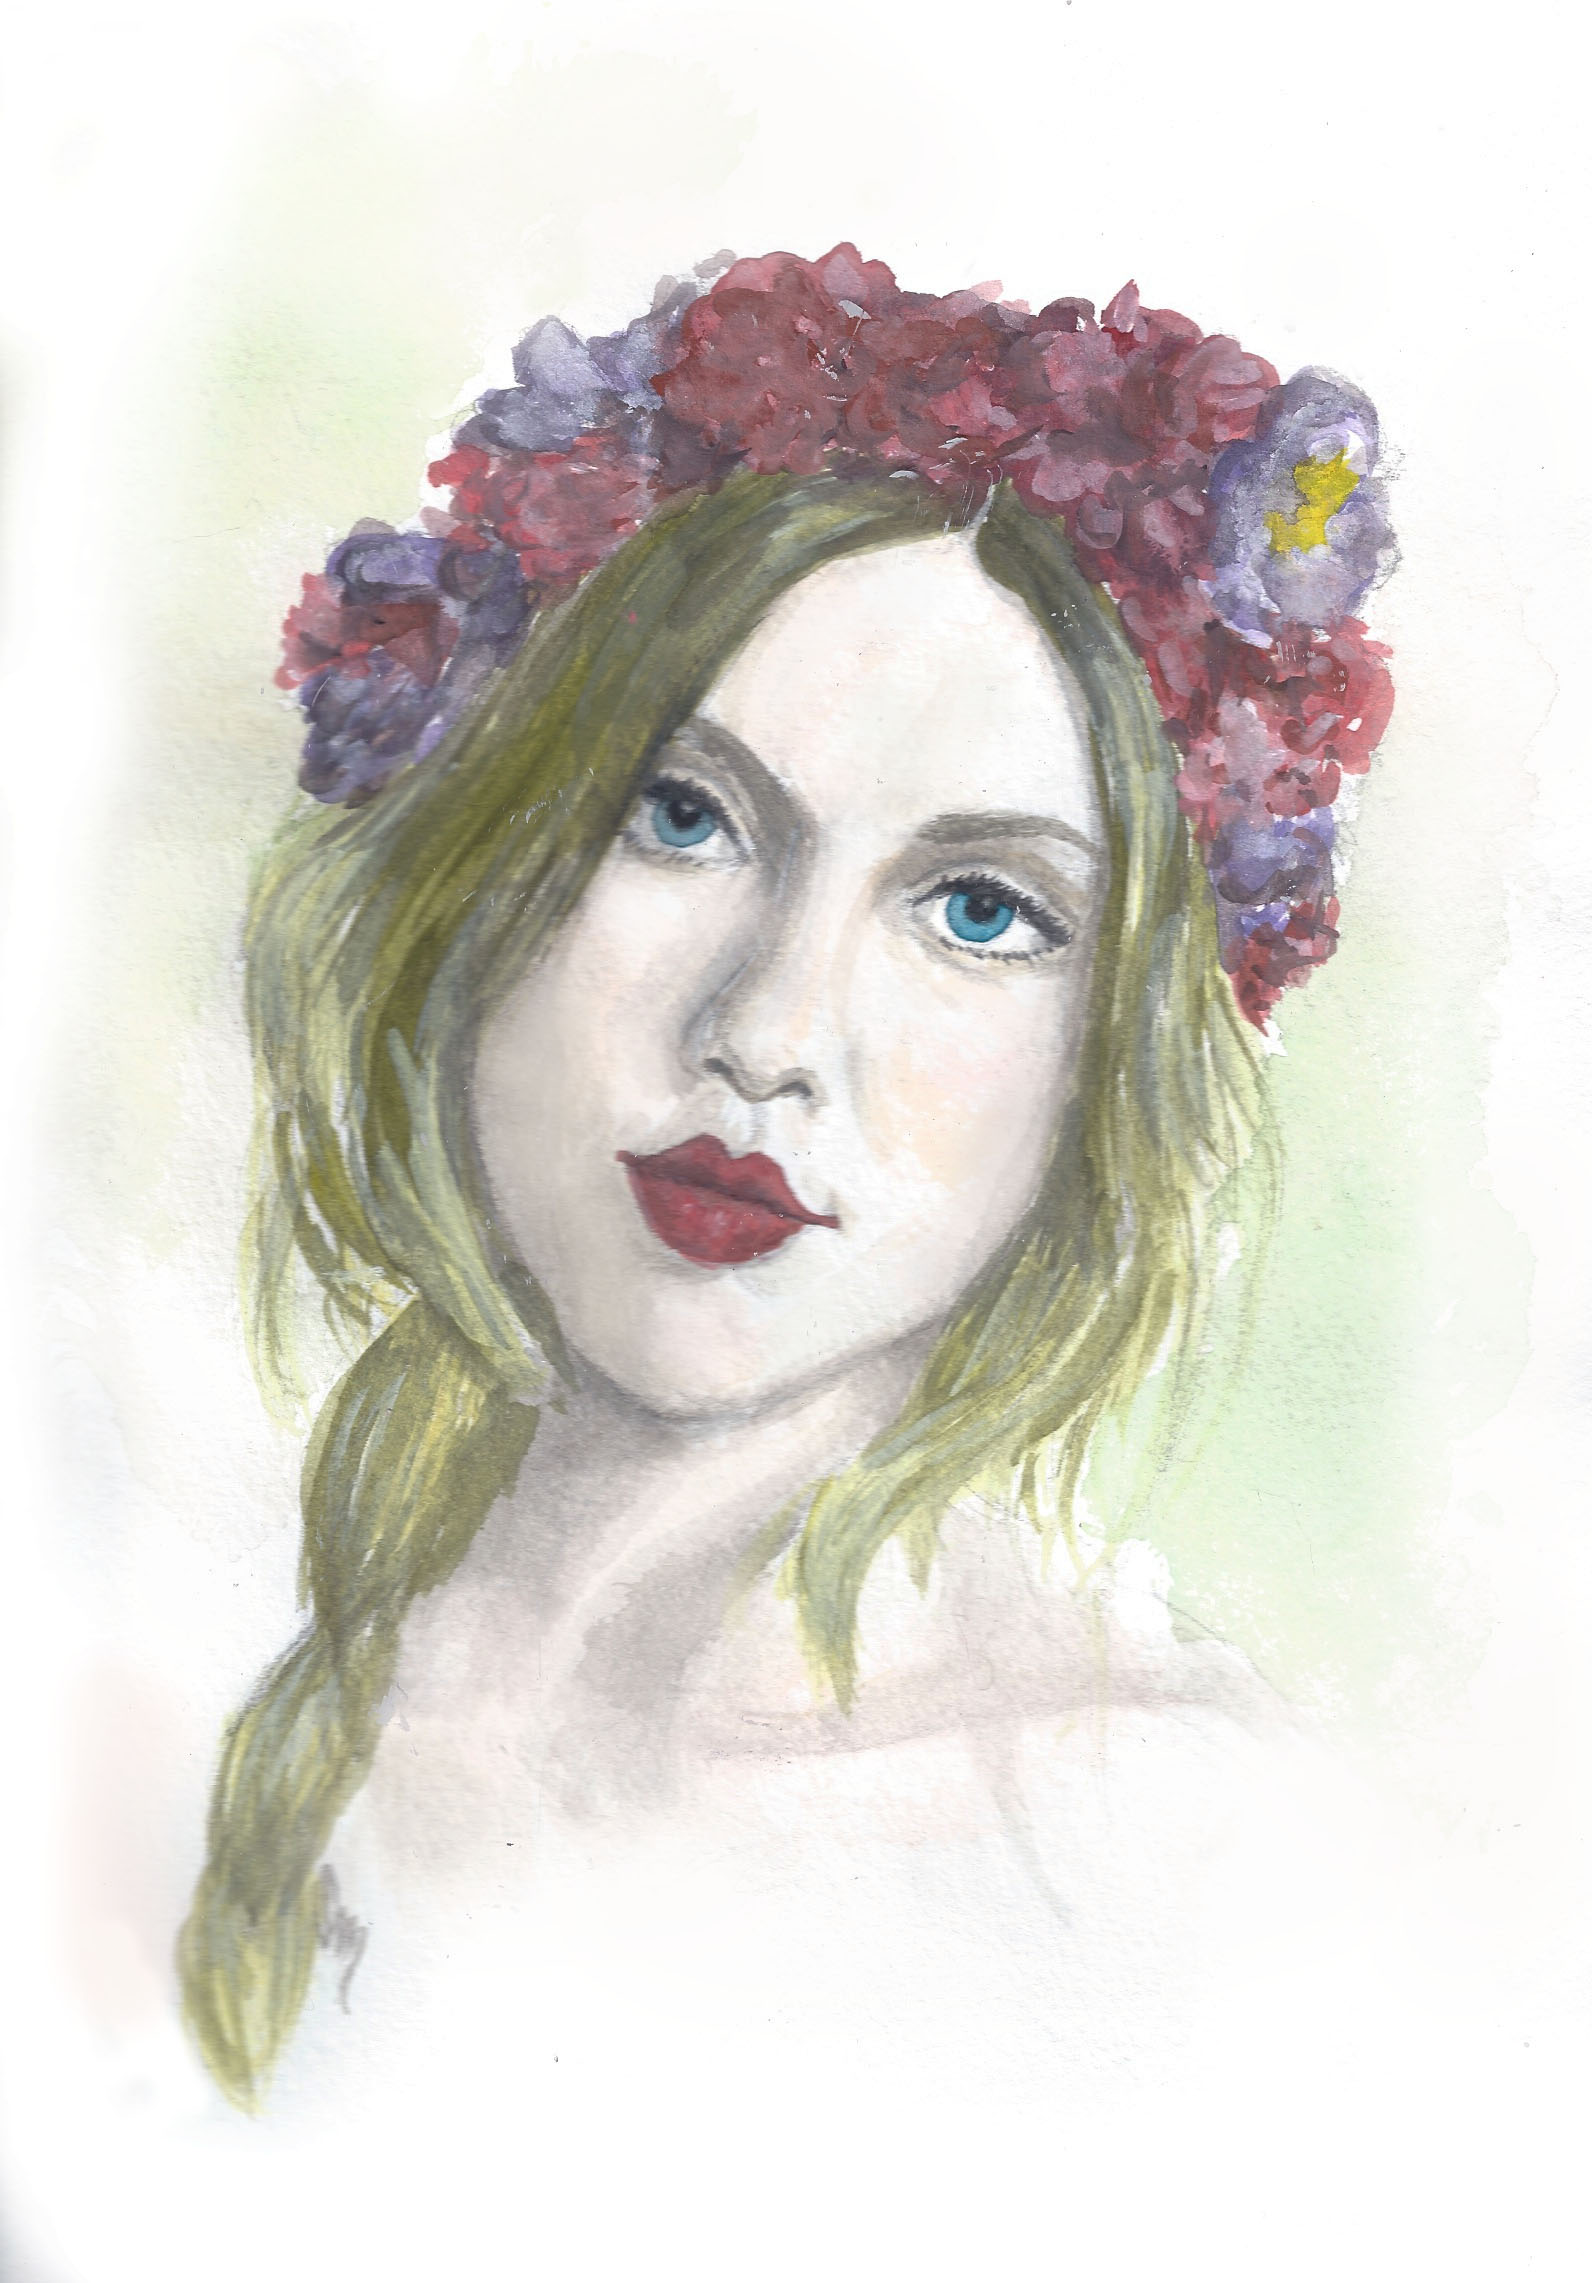 Girl With A Flower Crown Jo Of Lost In The Haze Sabina Mollot